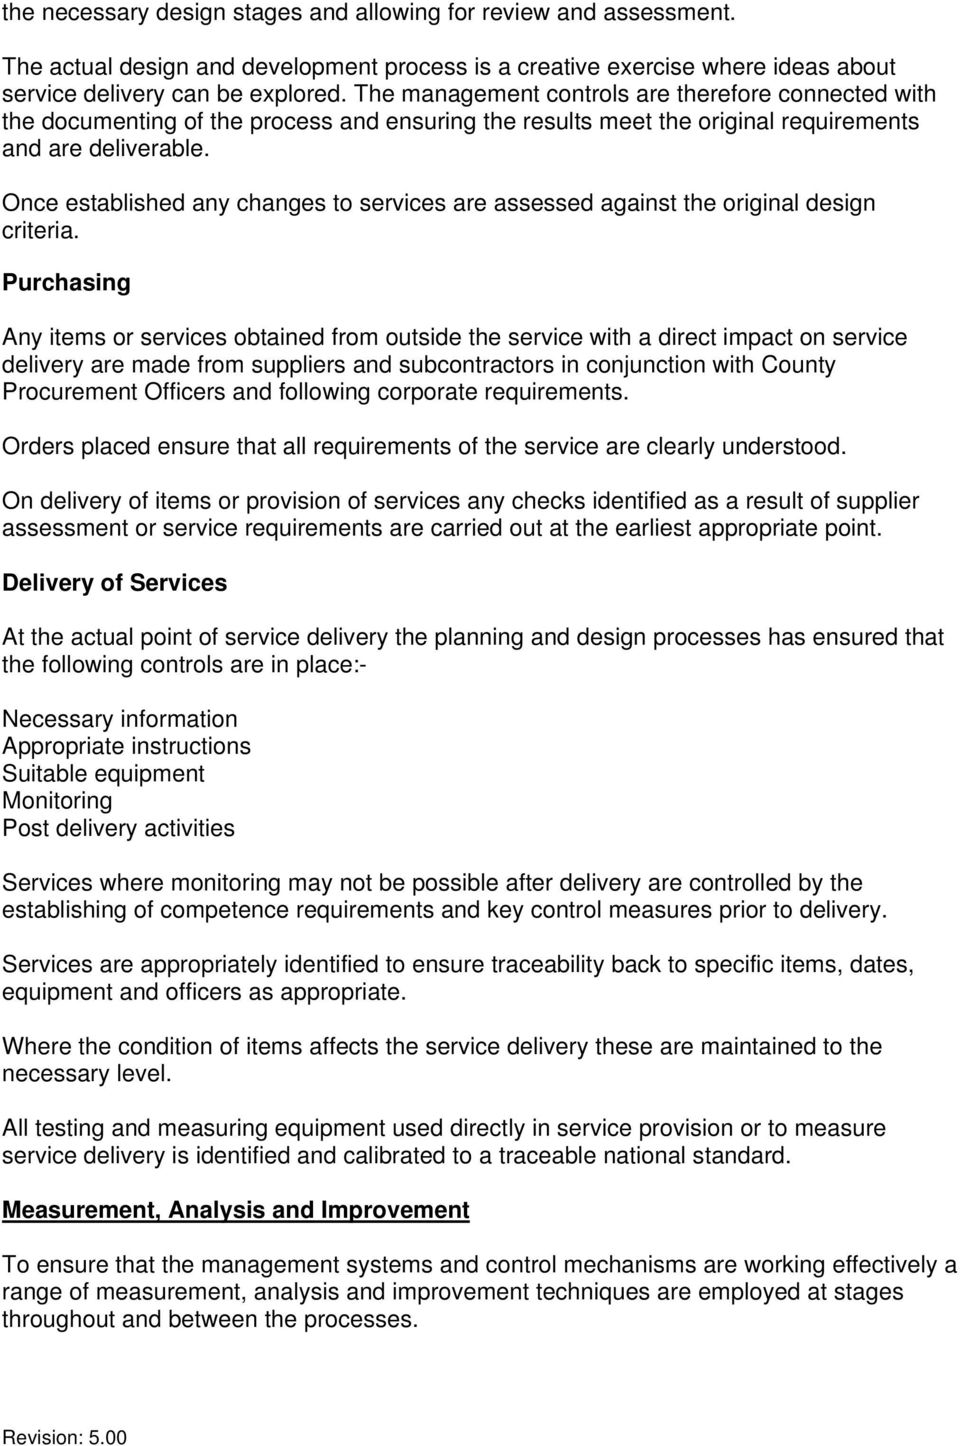 Once established any changes to services are assessed against the original design criteria.